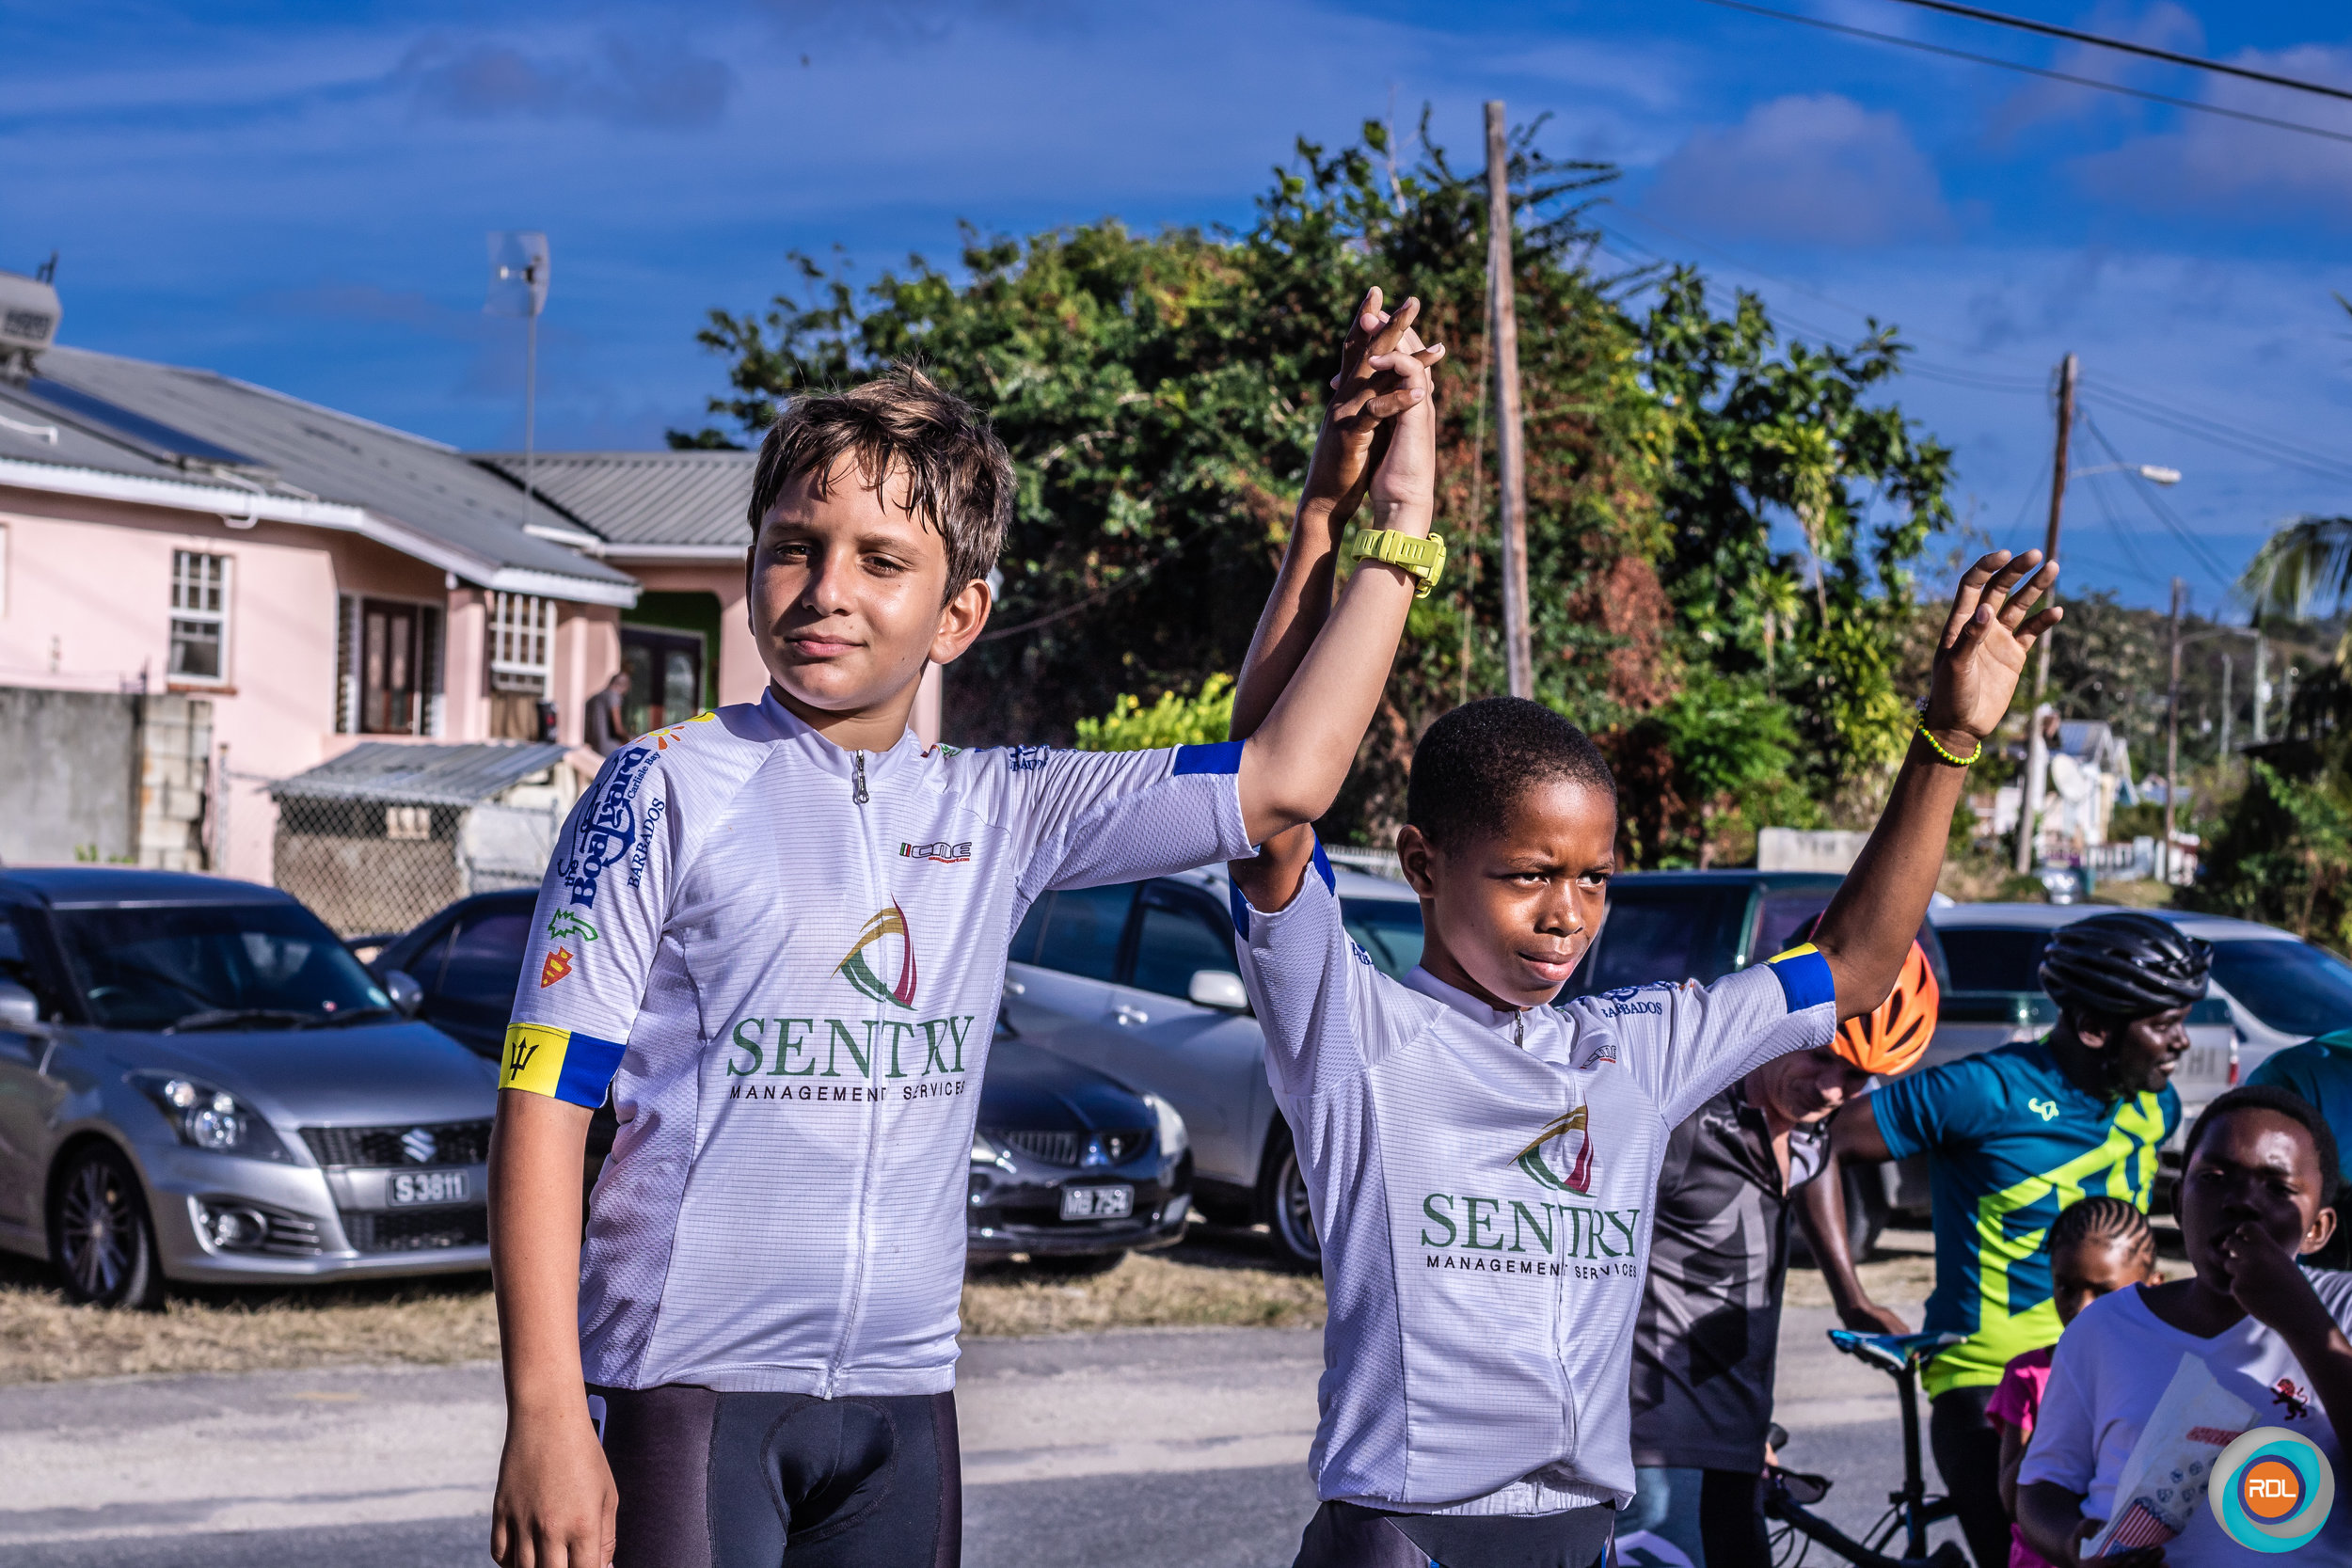 Jonah Kelly (left) and Kevin Webster (right) of the Tiny Mites category celebrates their first and second place win, respectively.